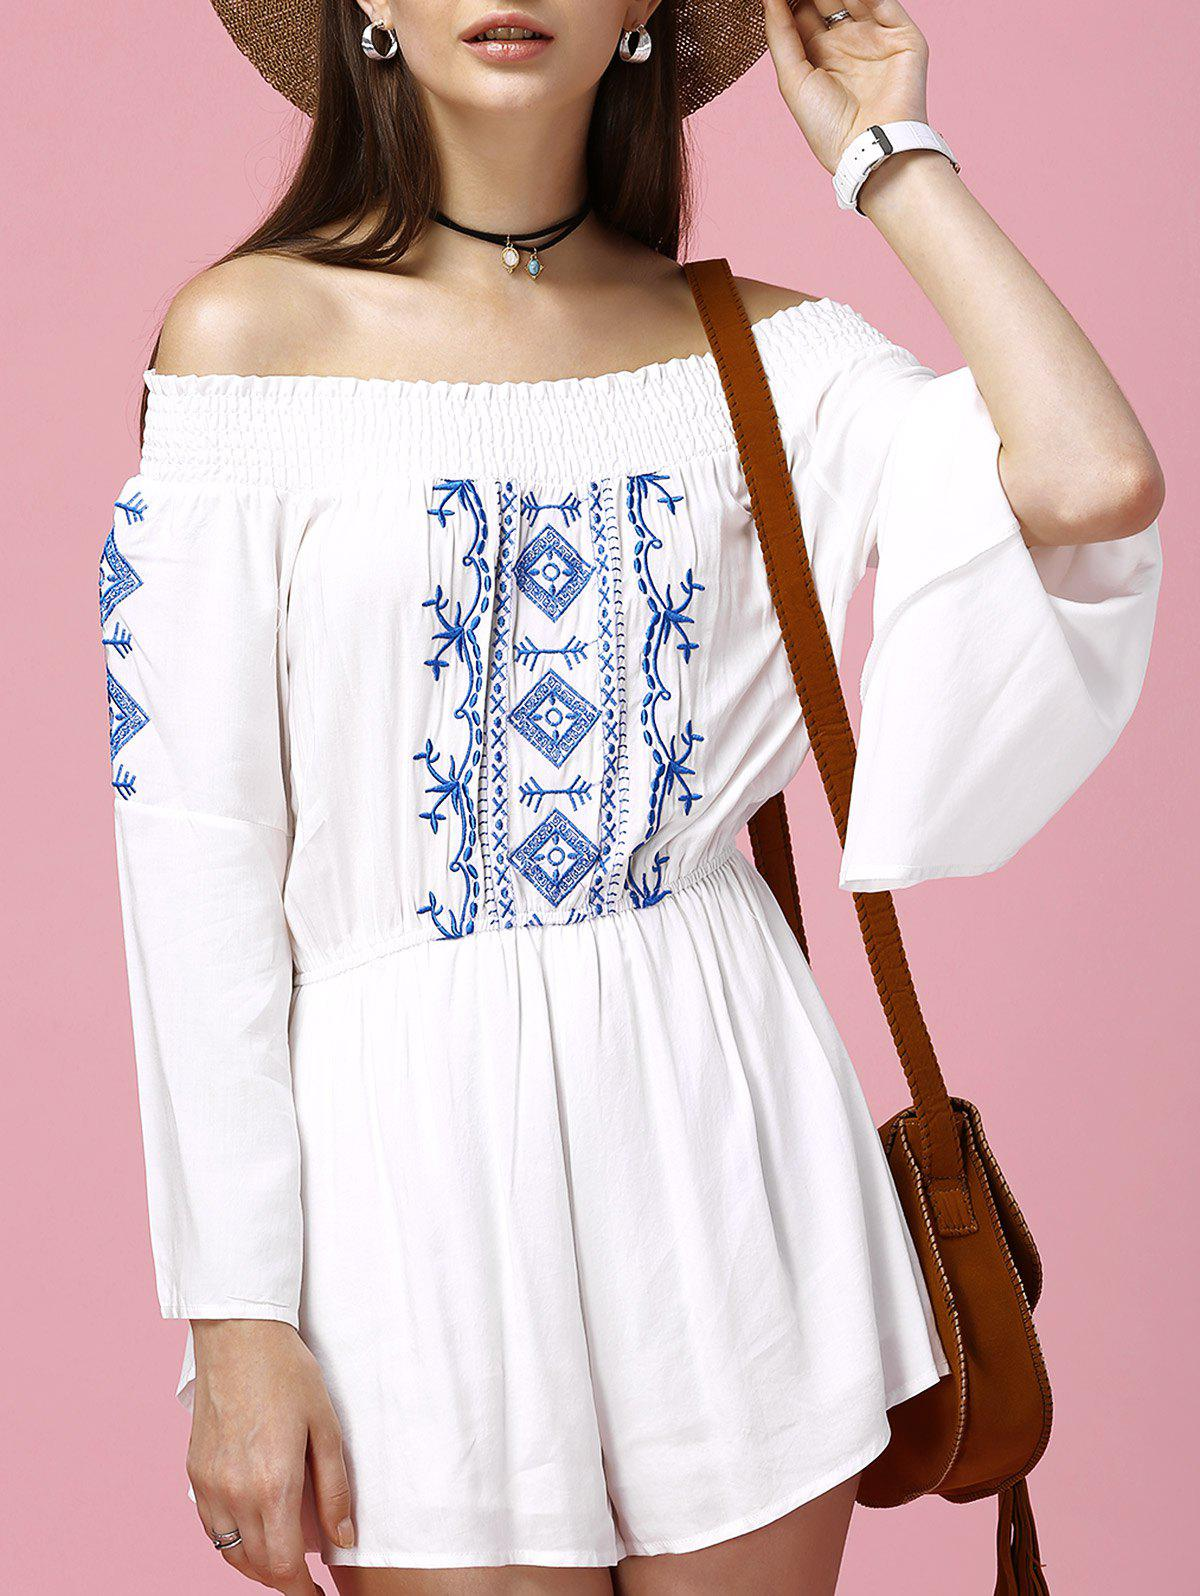 Ethnic Women's Off-The-Shoulder Flare Sleeves Embroidered Romper - WHITE 2XL